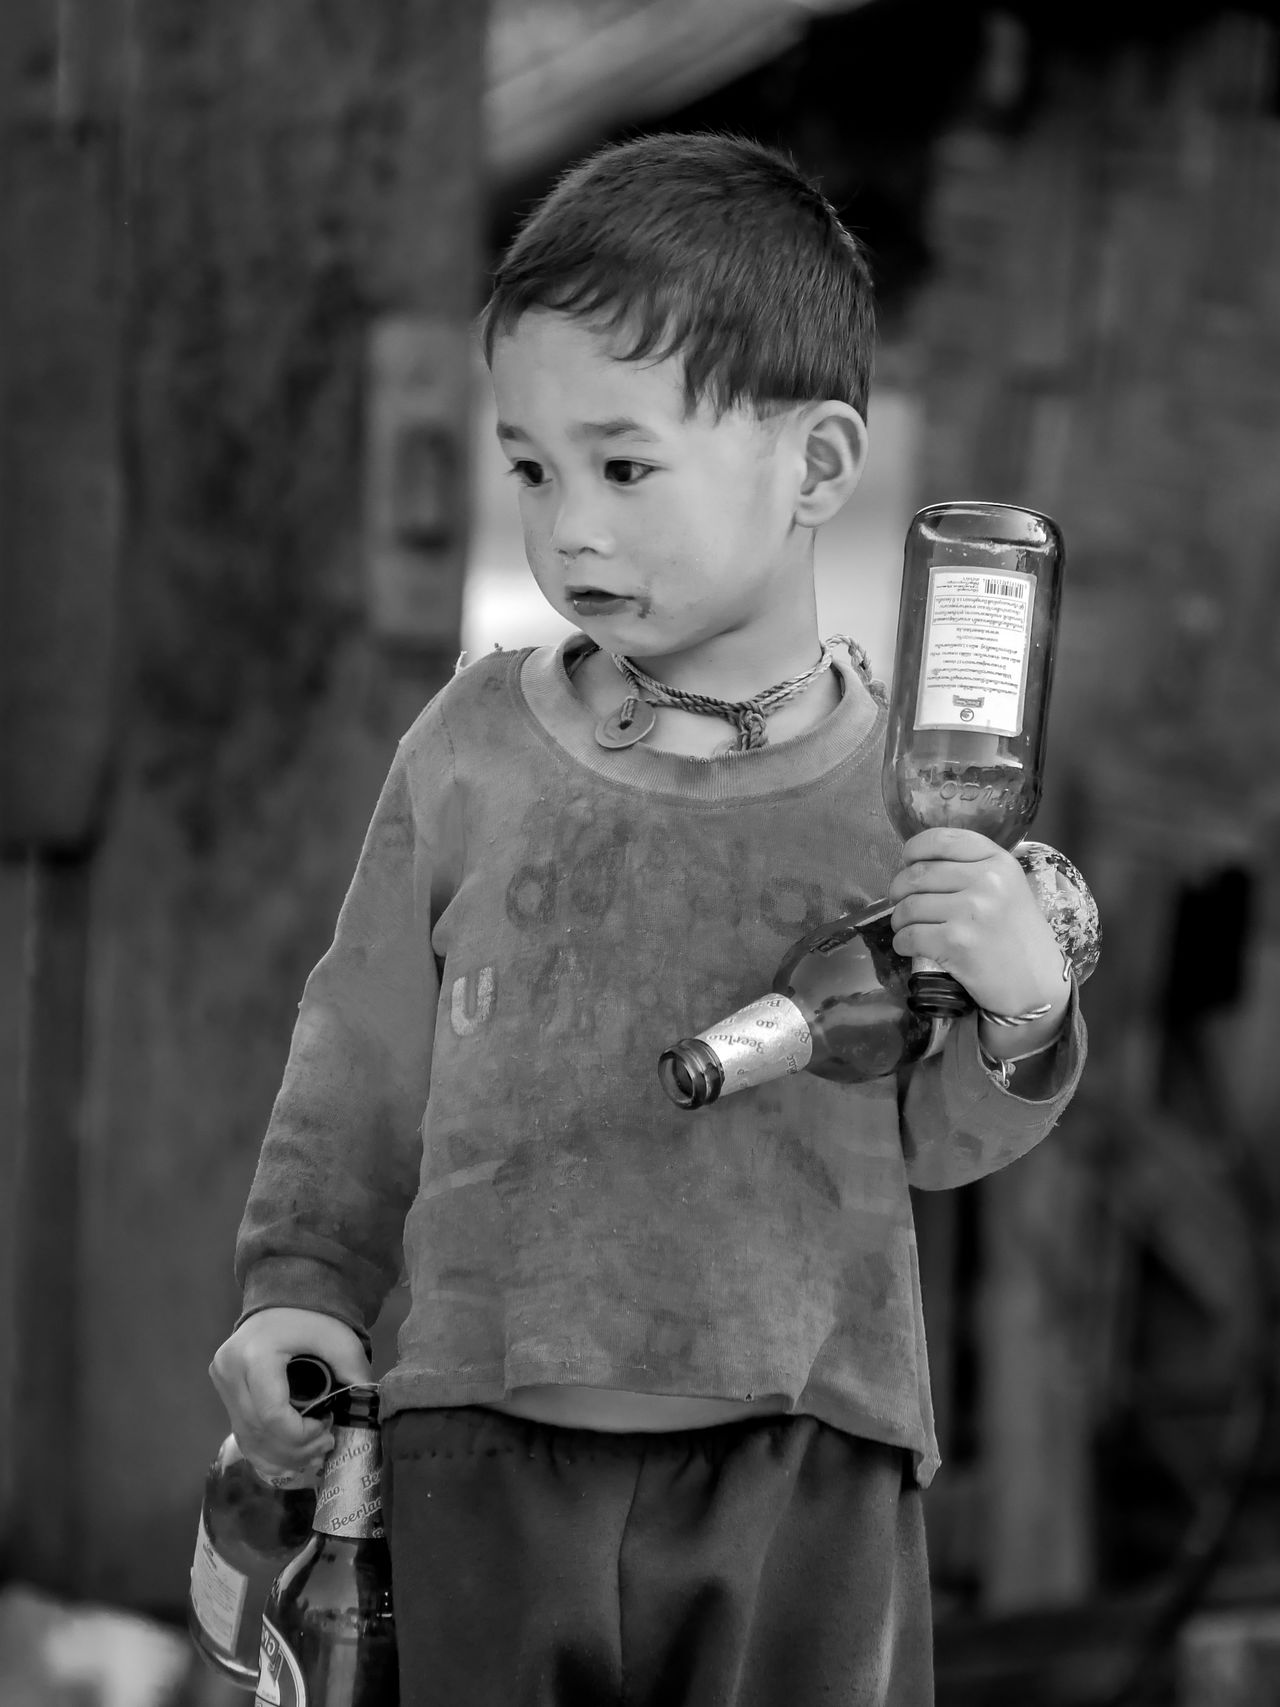 Beer Bottles Beer Lao Black & White Black And White Blackandwhite Childhood Children With Beer Elementary Age Facial Expression Focus On Foreground Front View Holding Laos Laos Village Person Standing Street Photography Streetphotography Travel Traveling Vacations